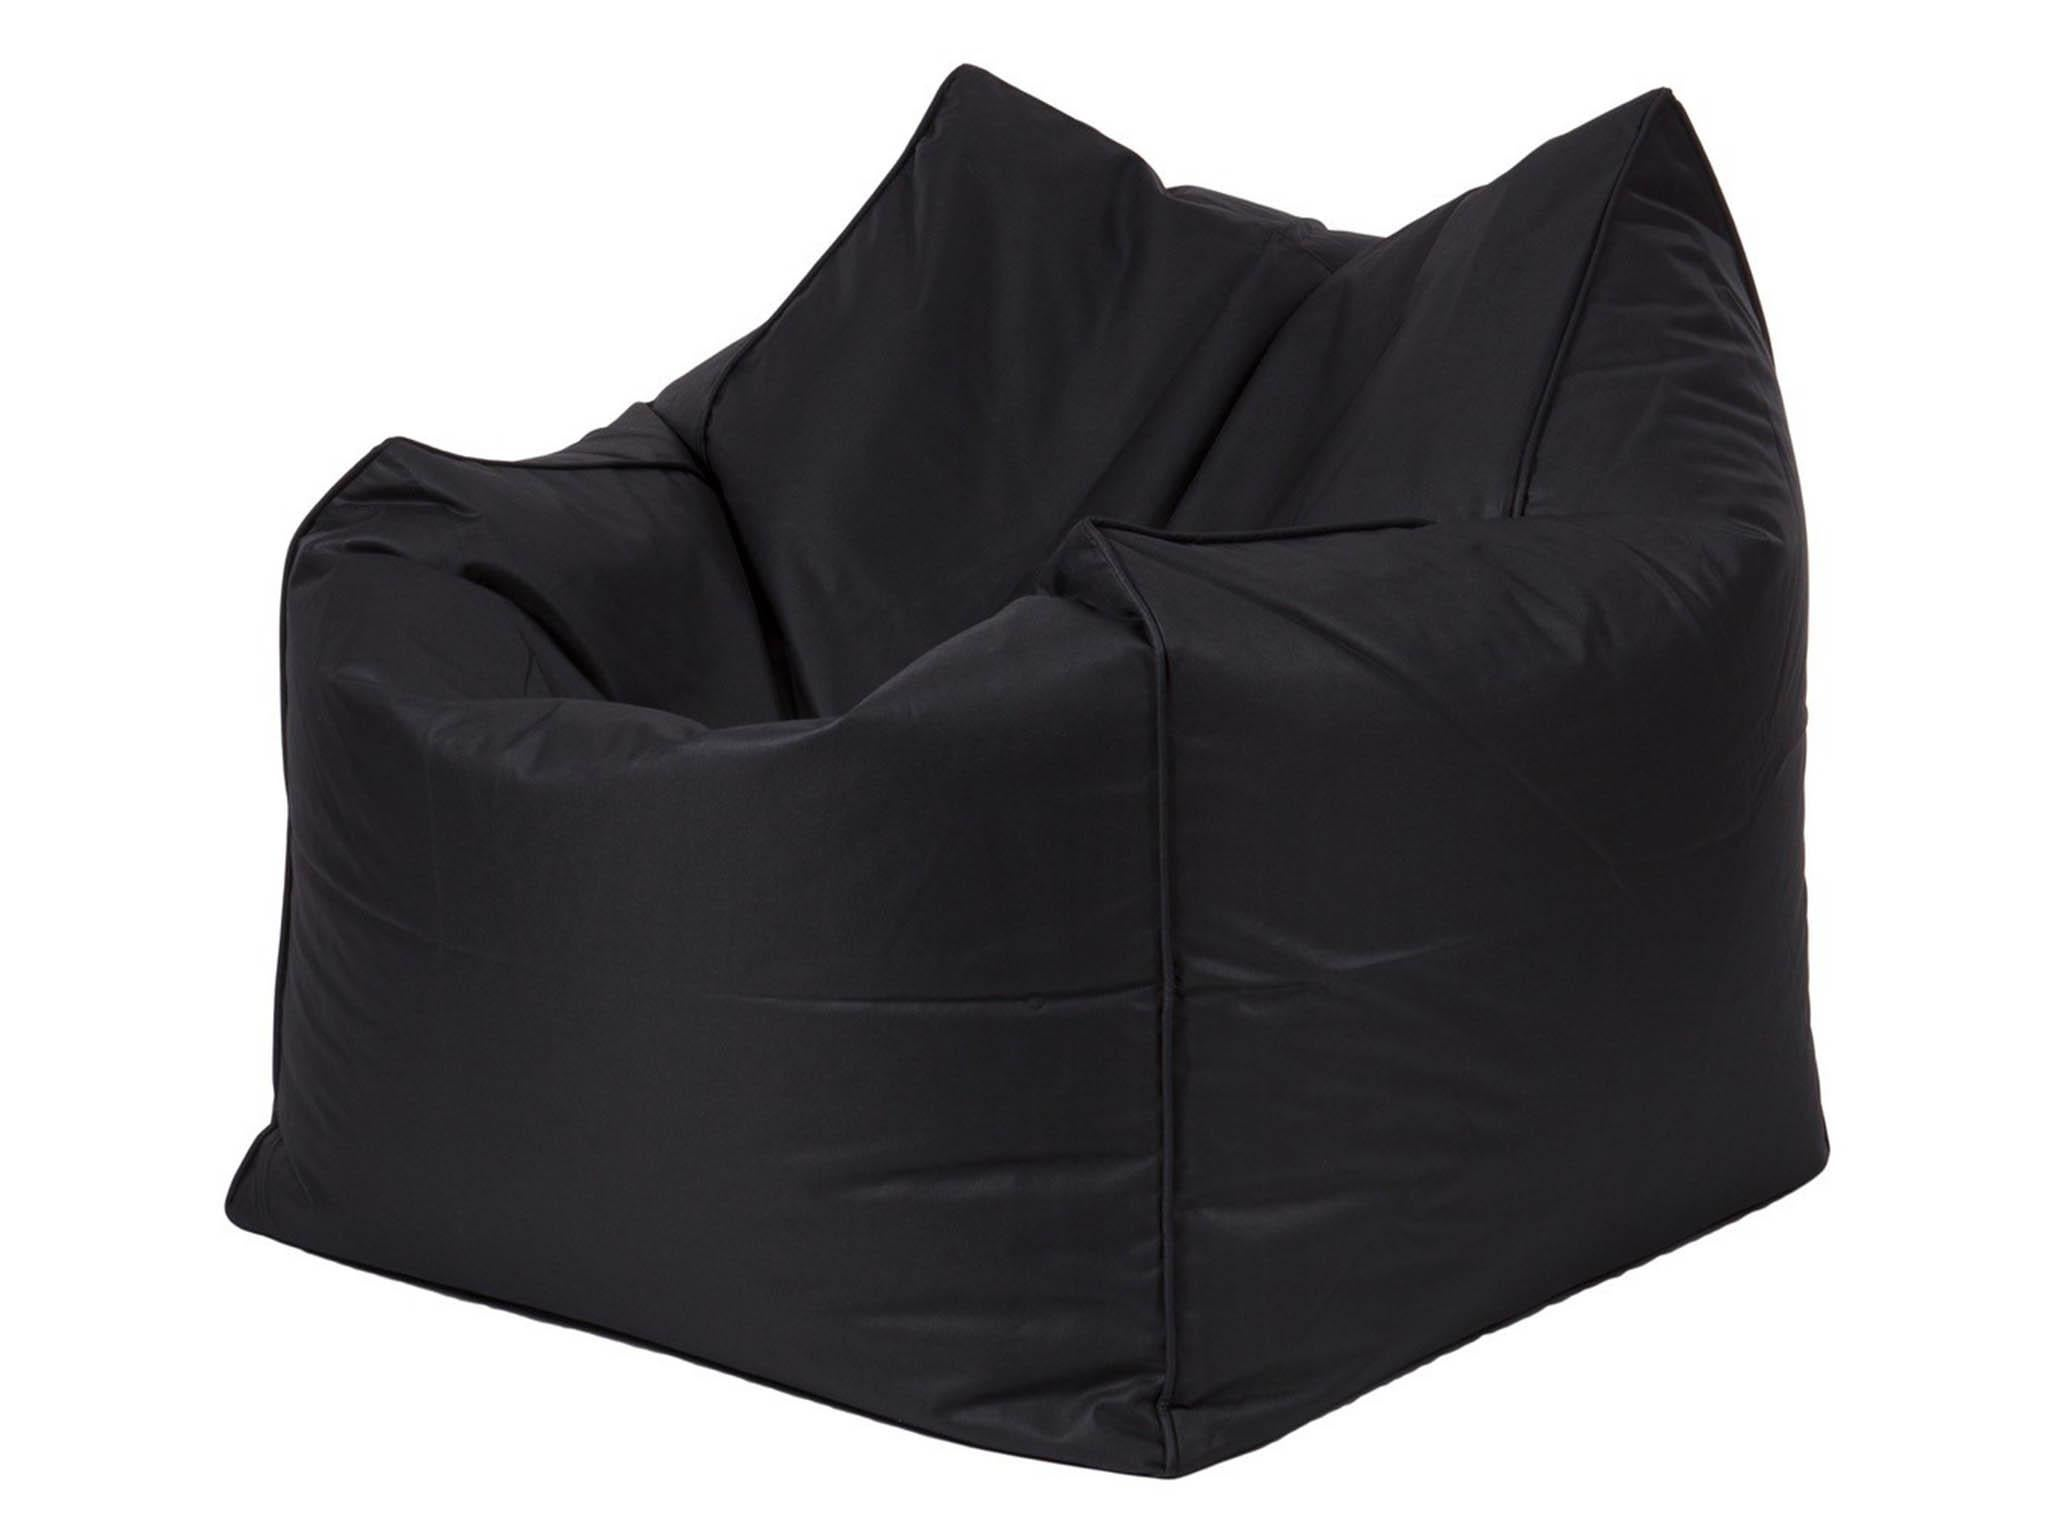 Groovy 10 Best Bean Bags The Independent Gmtry Best Dining Table And Chair Ideas Images Gmtryco